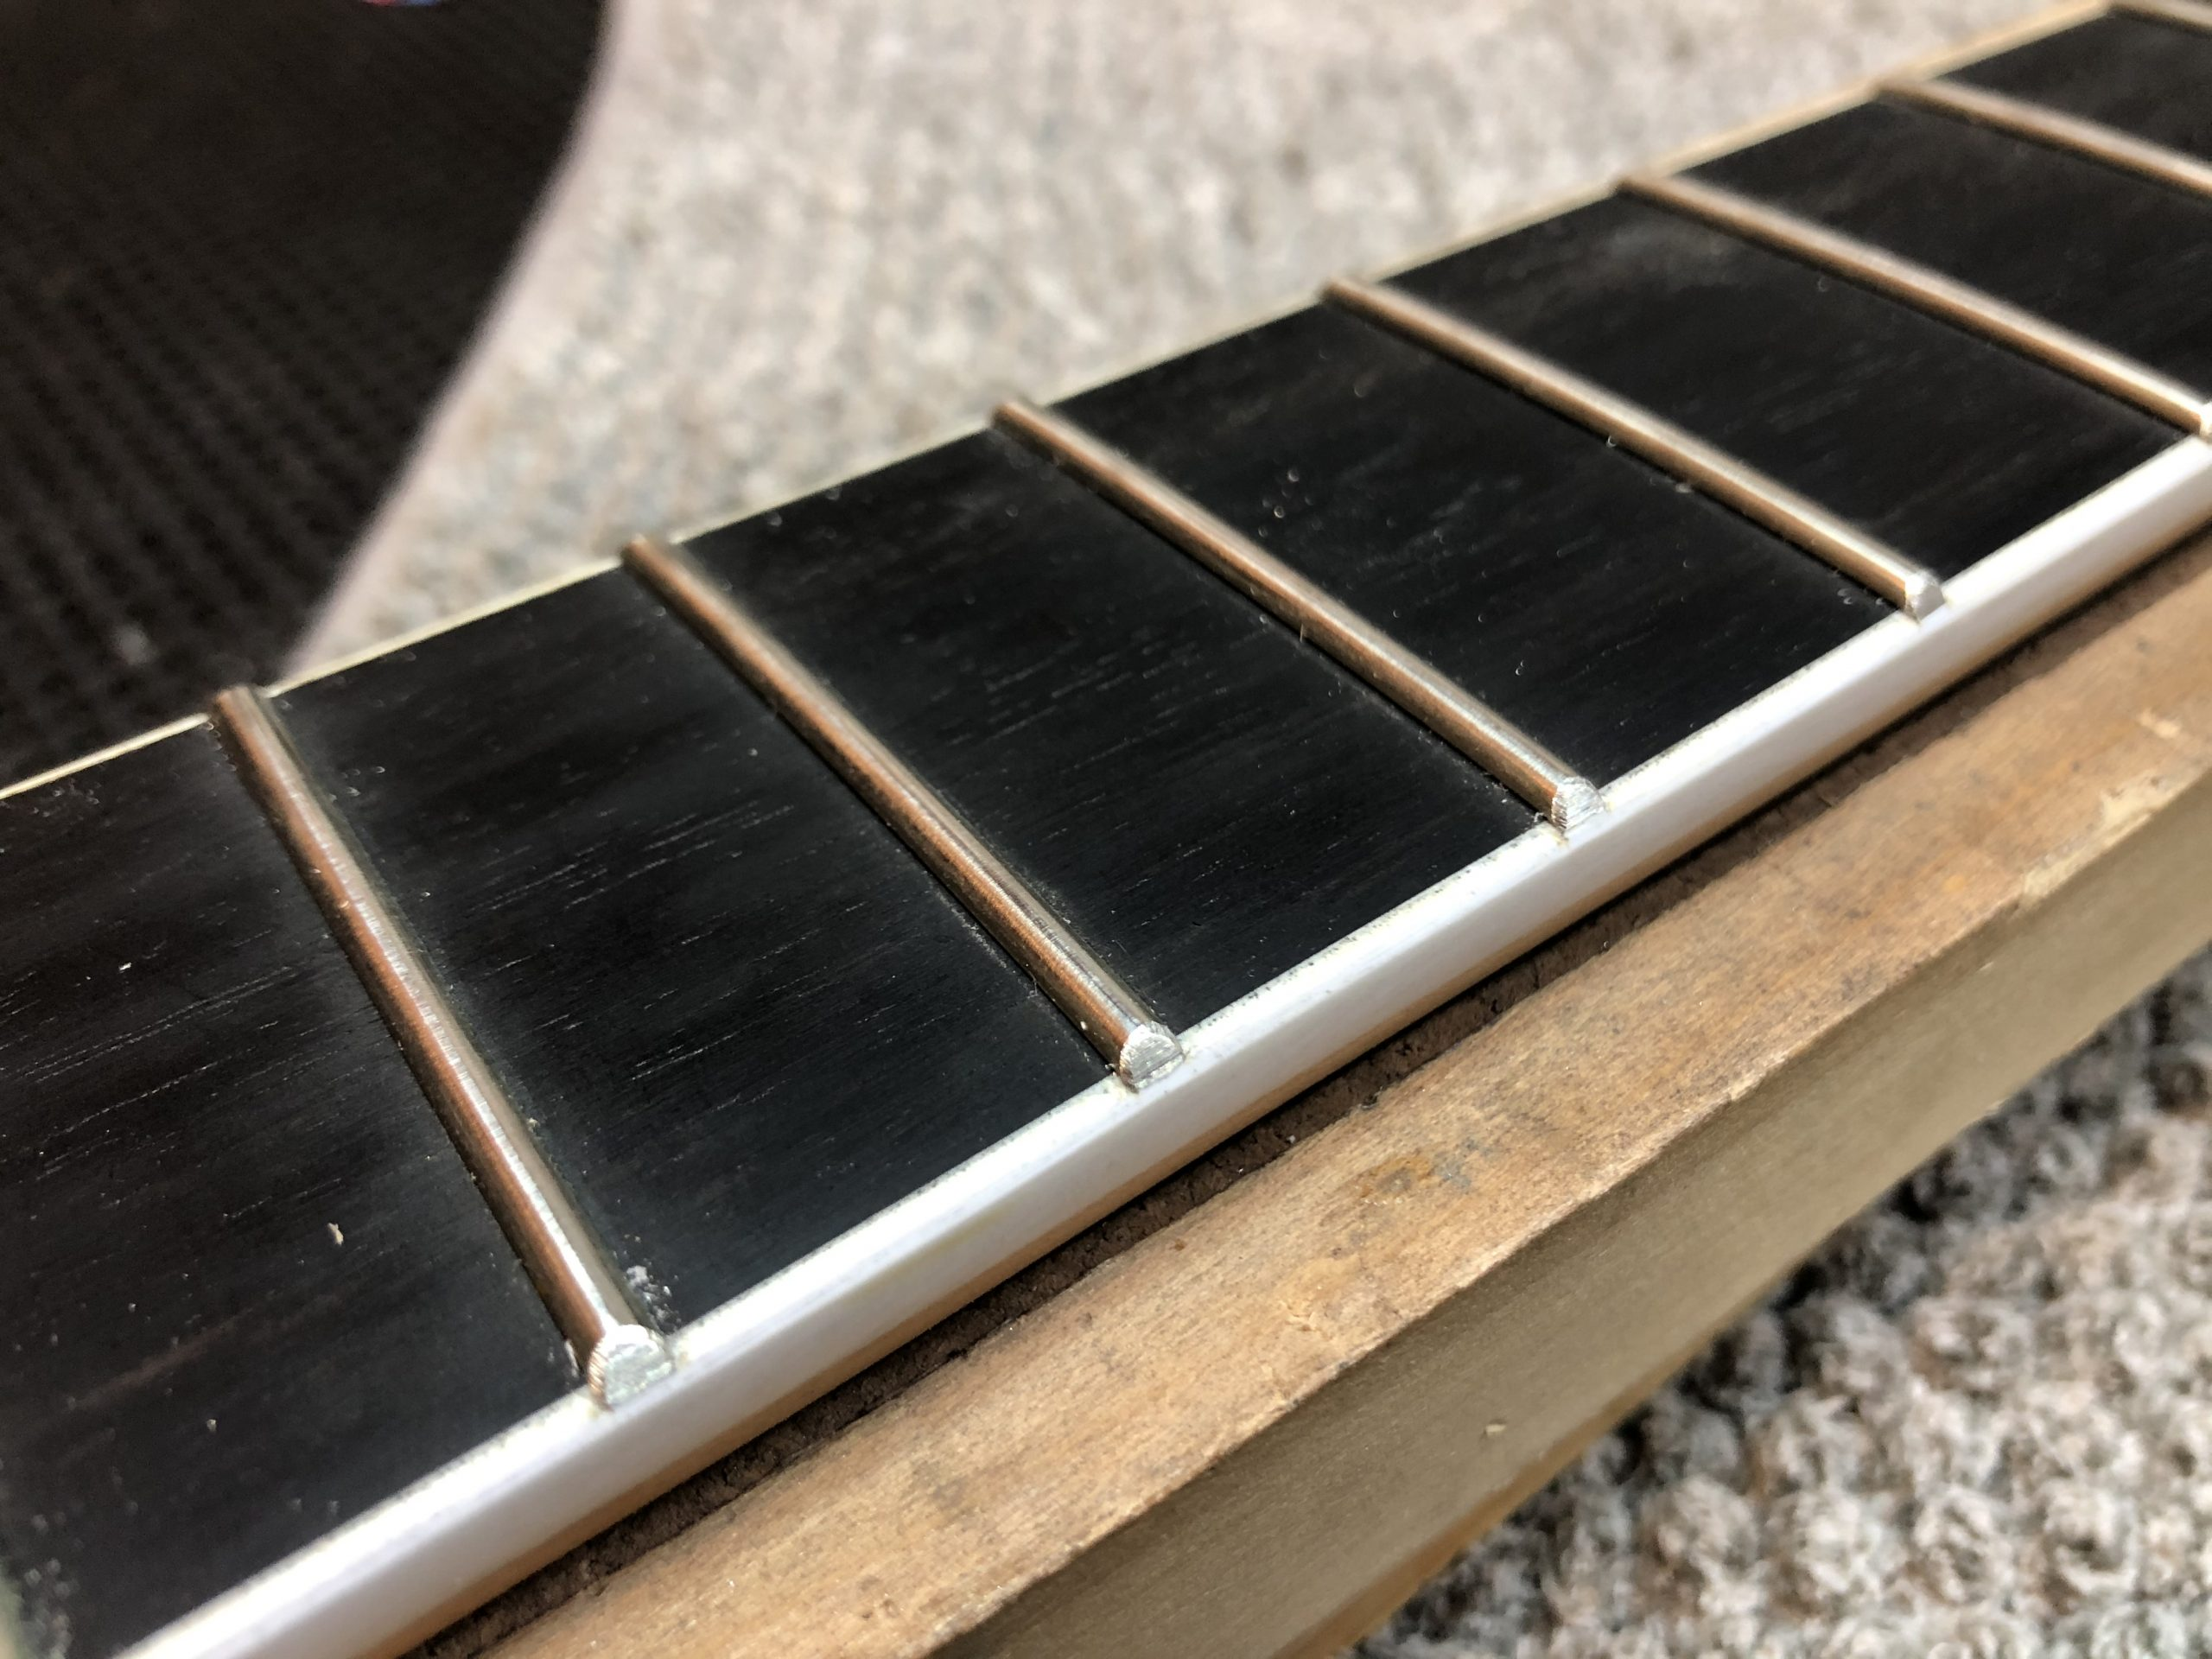 Redressing the fret ends